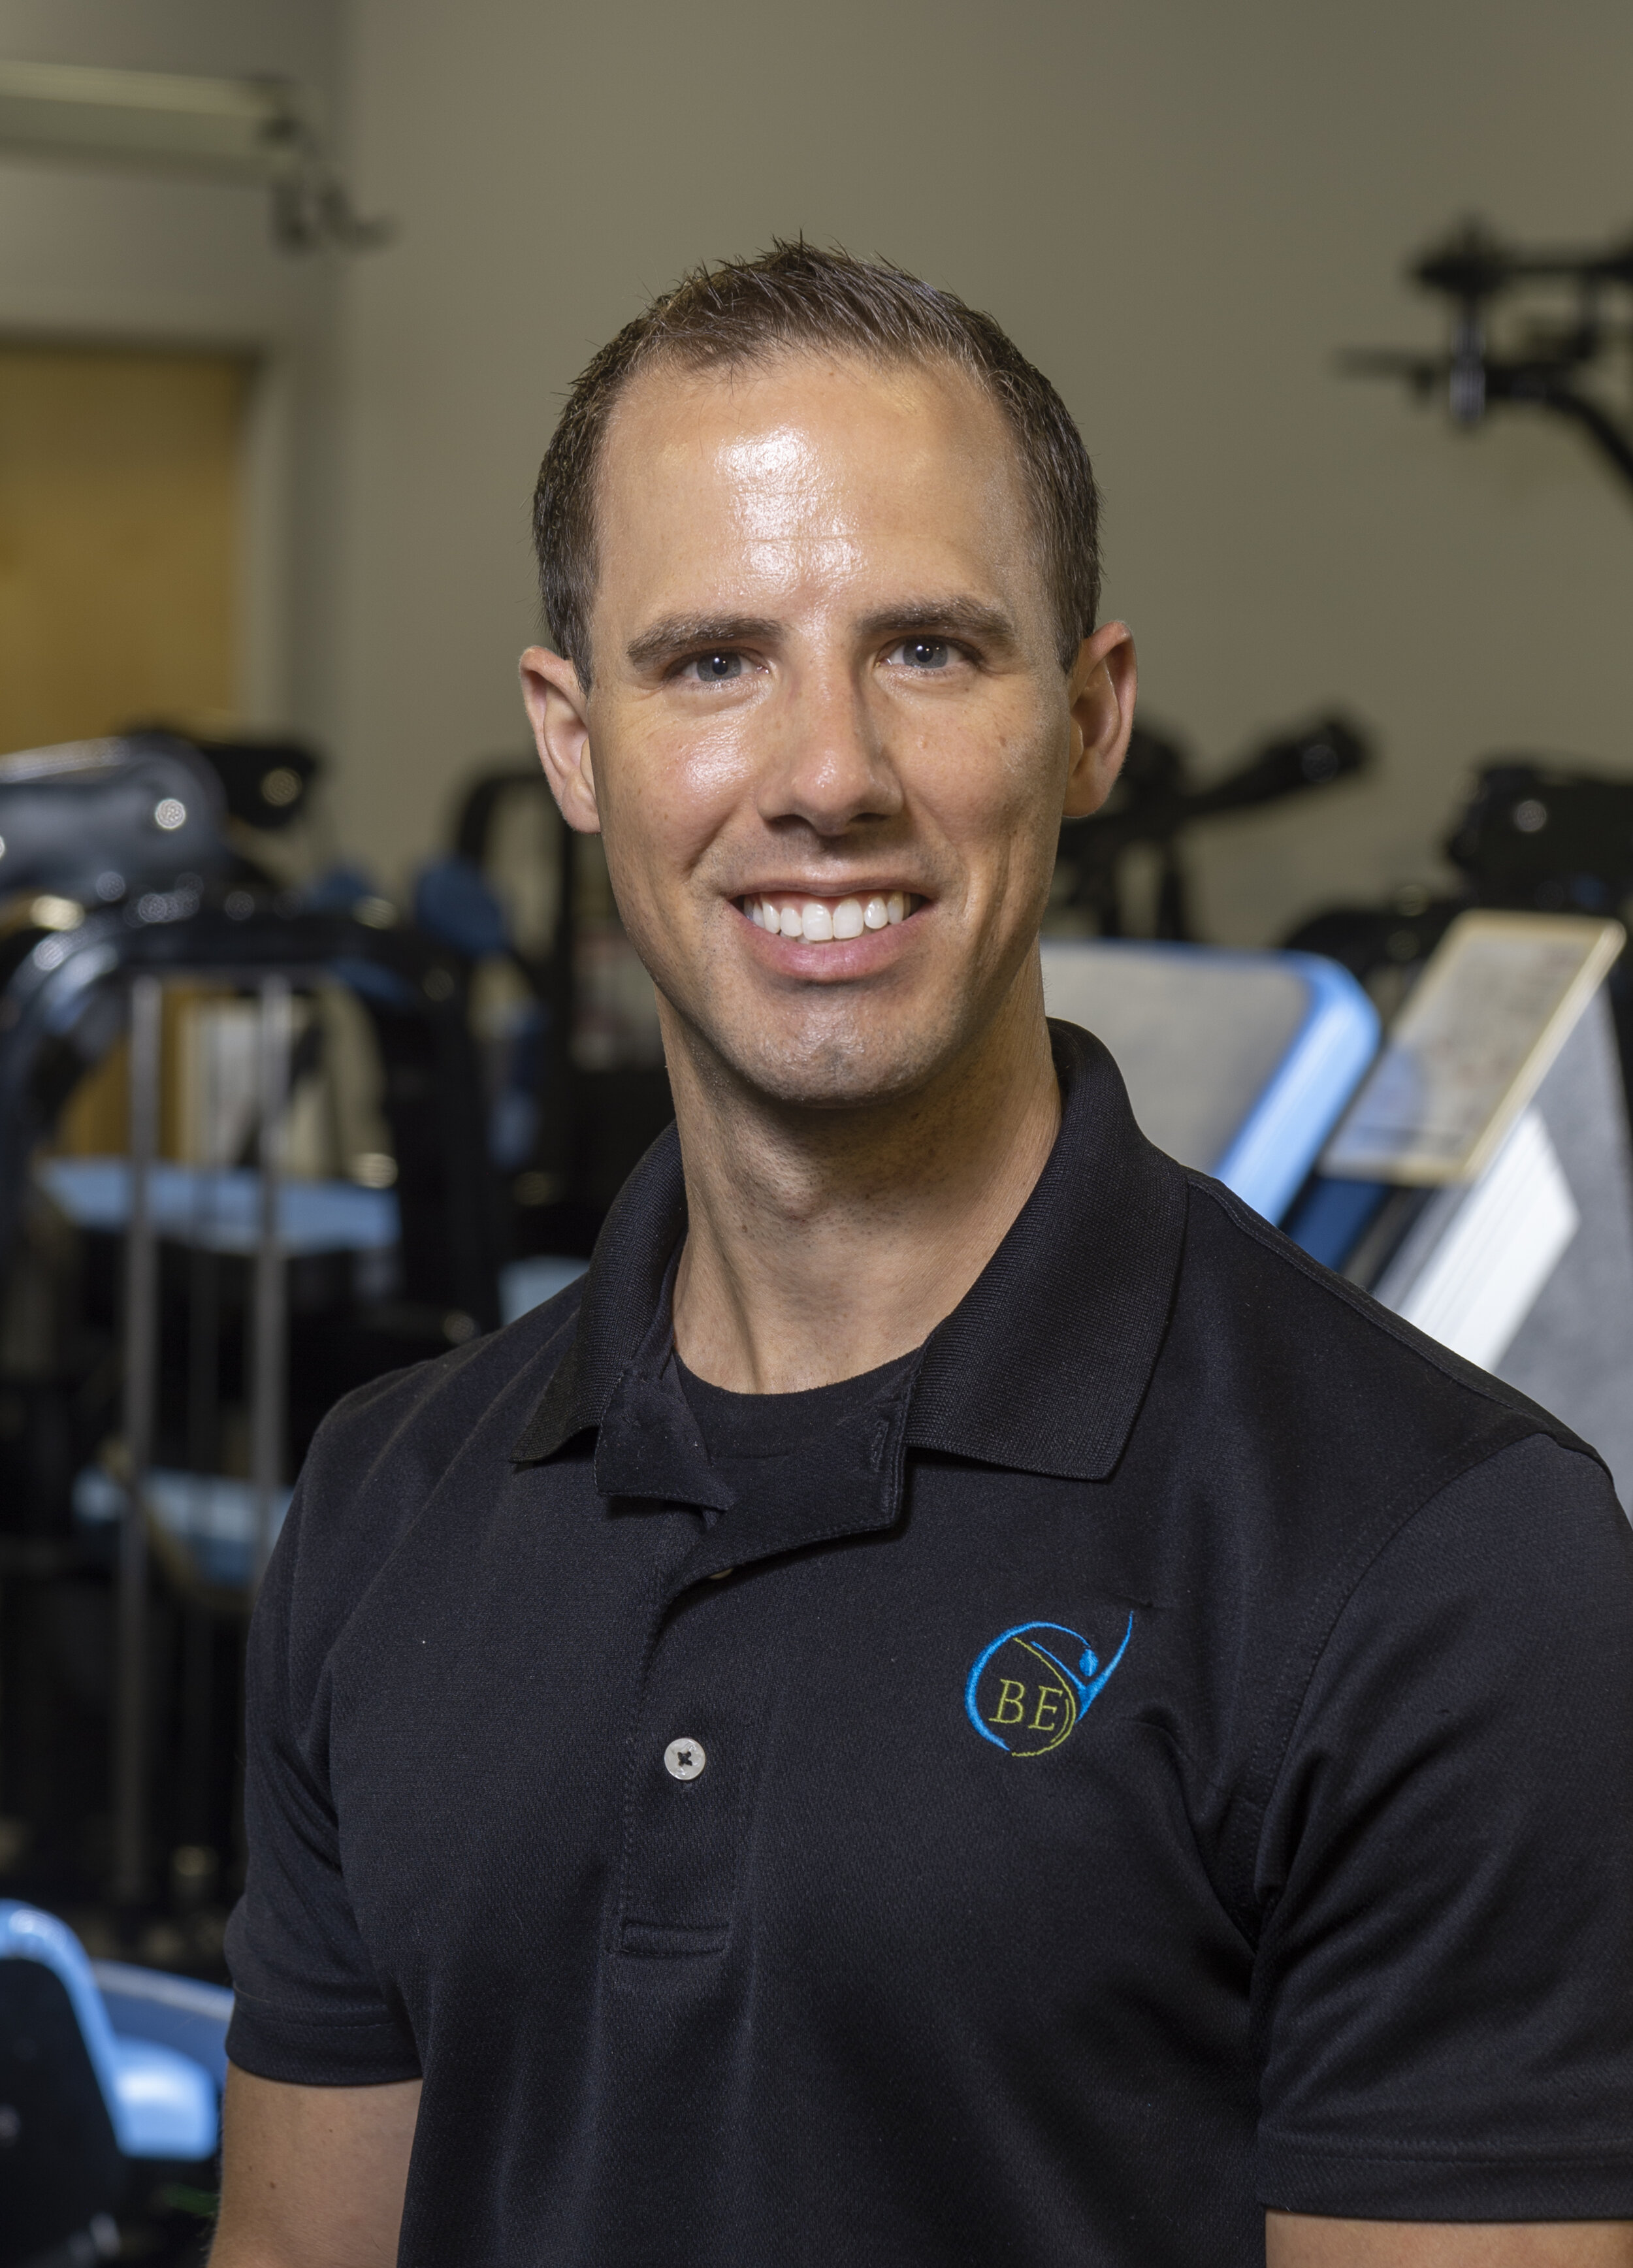 Mark Radio - BA in Exercise Science, certified personal trainer, and certified nutritional counselor. Mark's ability to connect, motivate, and educate has made him one of the most sought after health and fitness professionals in the industry.